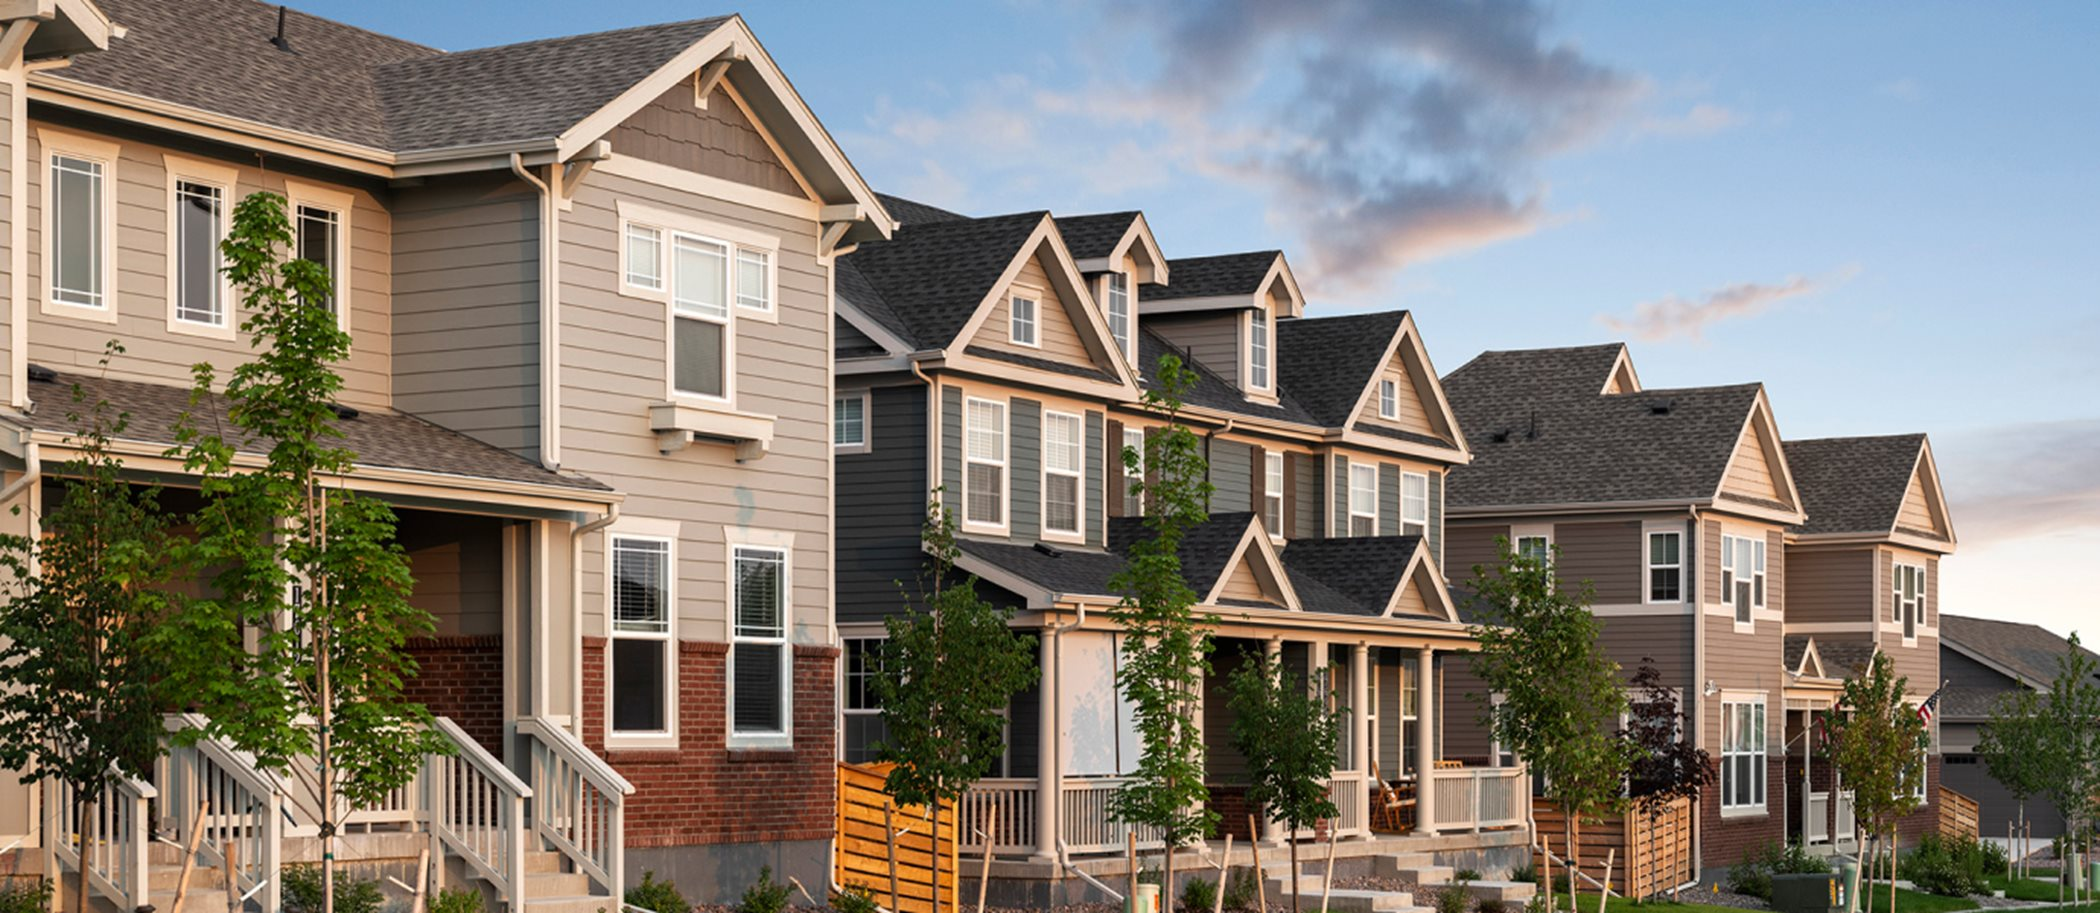 Streetscape at Paired Homes at Palisade Park West